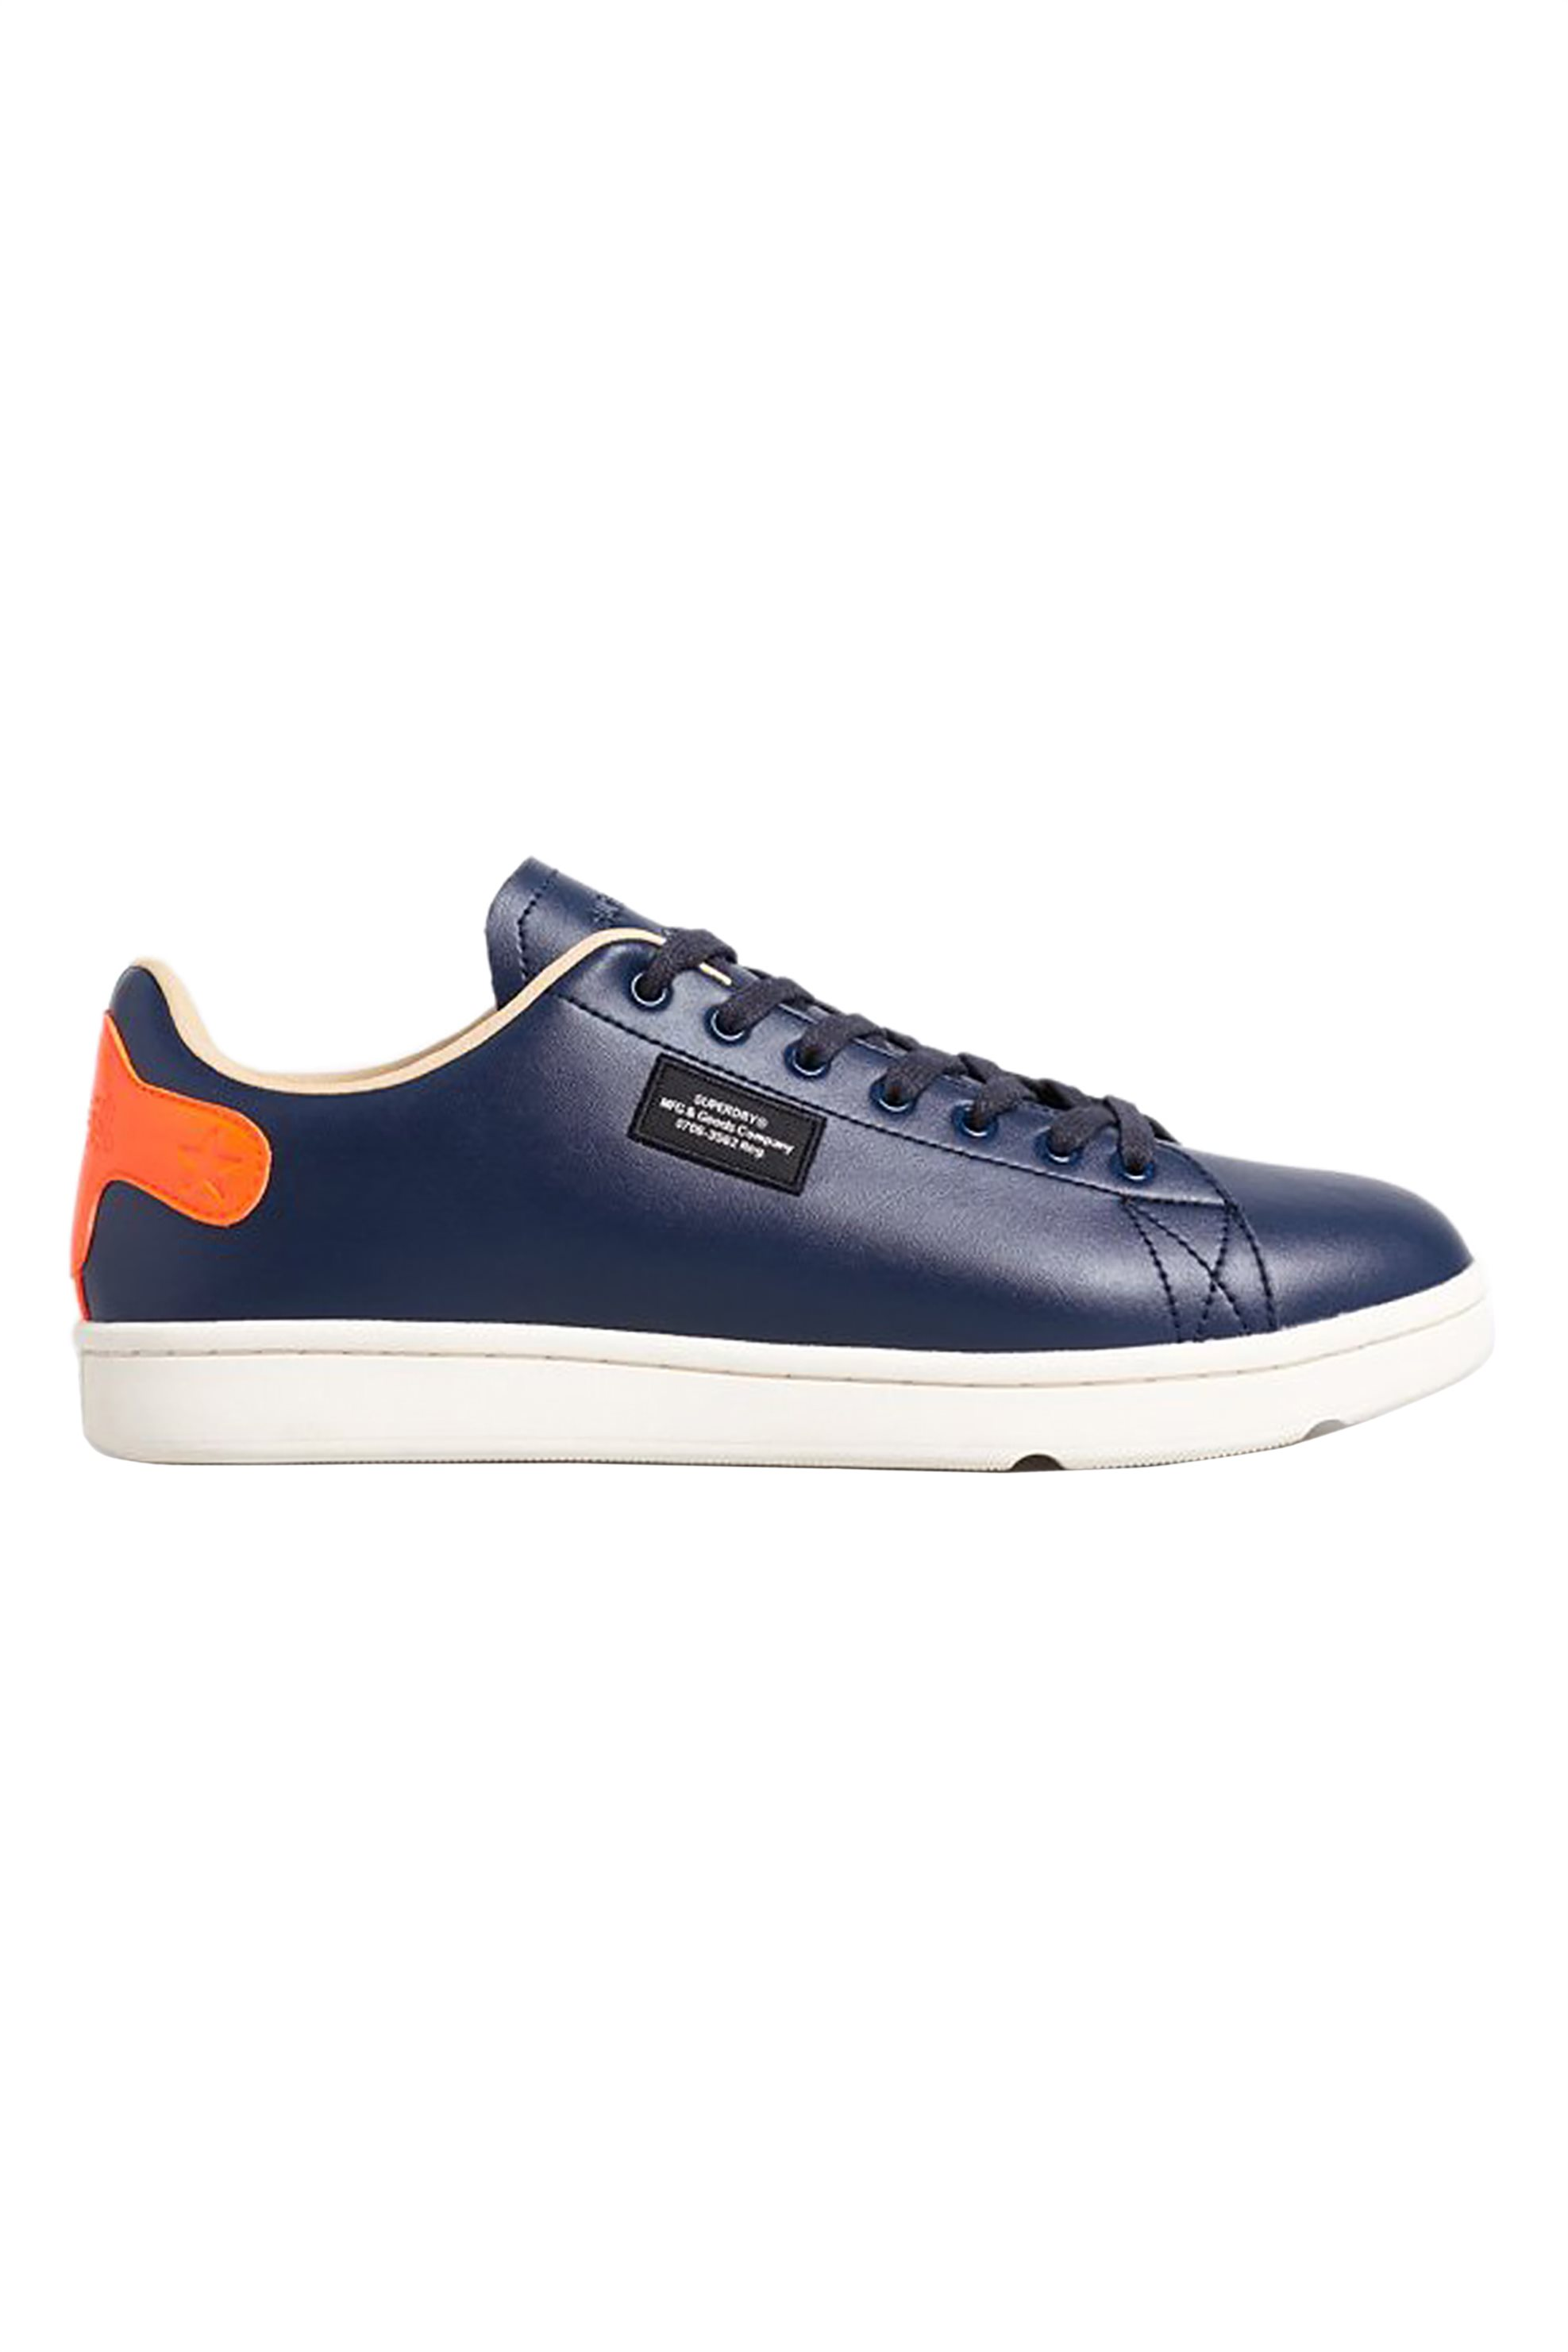 """Superdry ανδρικά sneakers """"Vintage Tennis Trainers"""" – MF110047A – Μπλε Σκούρο"""